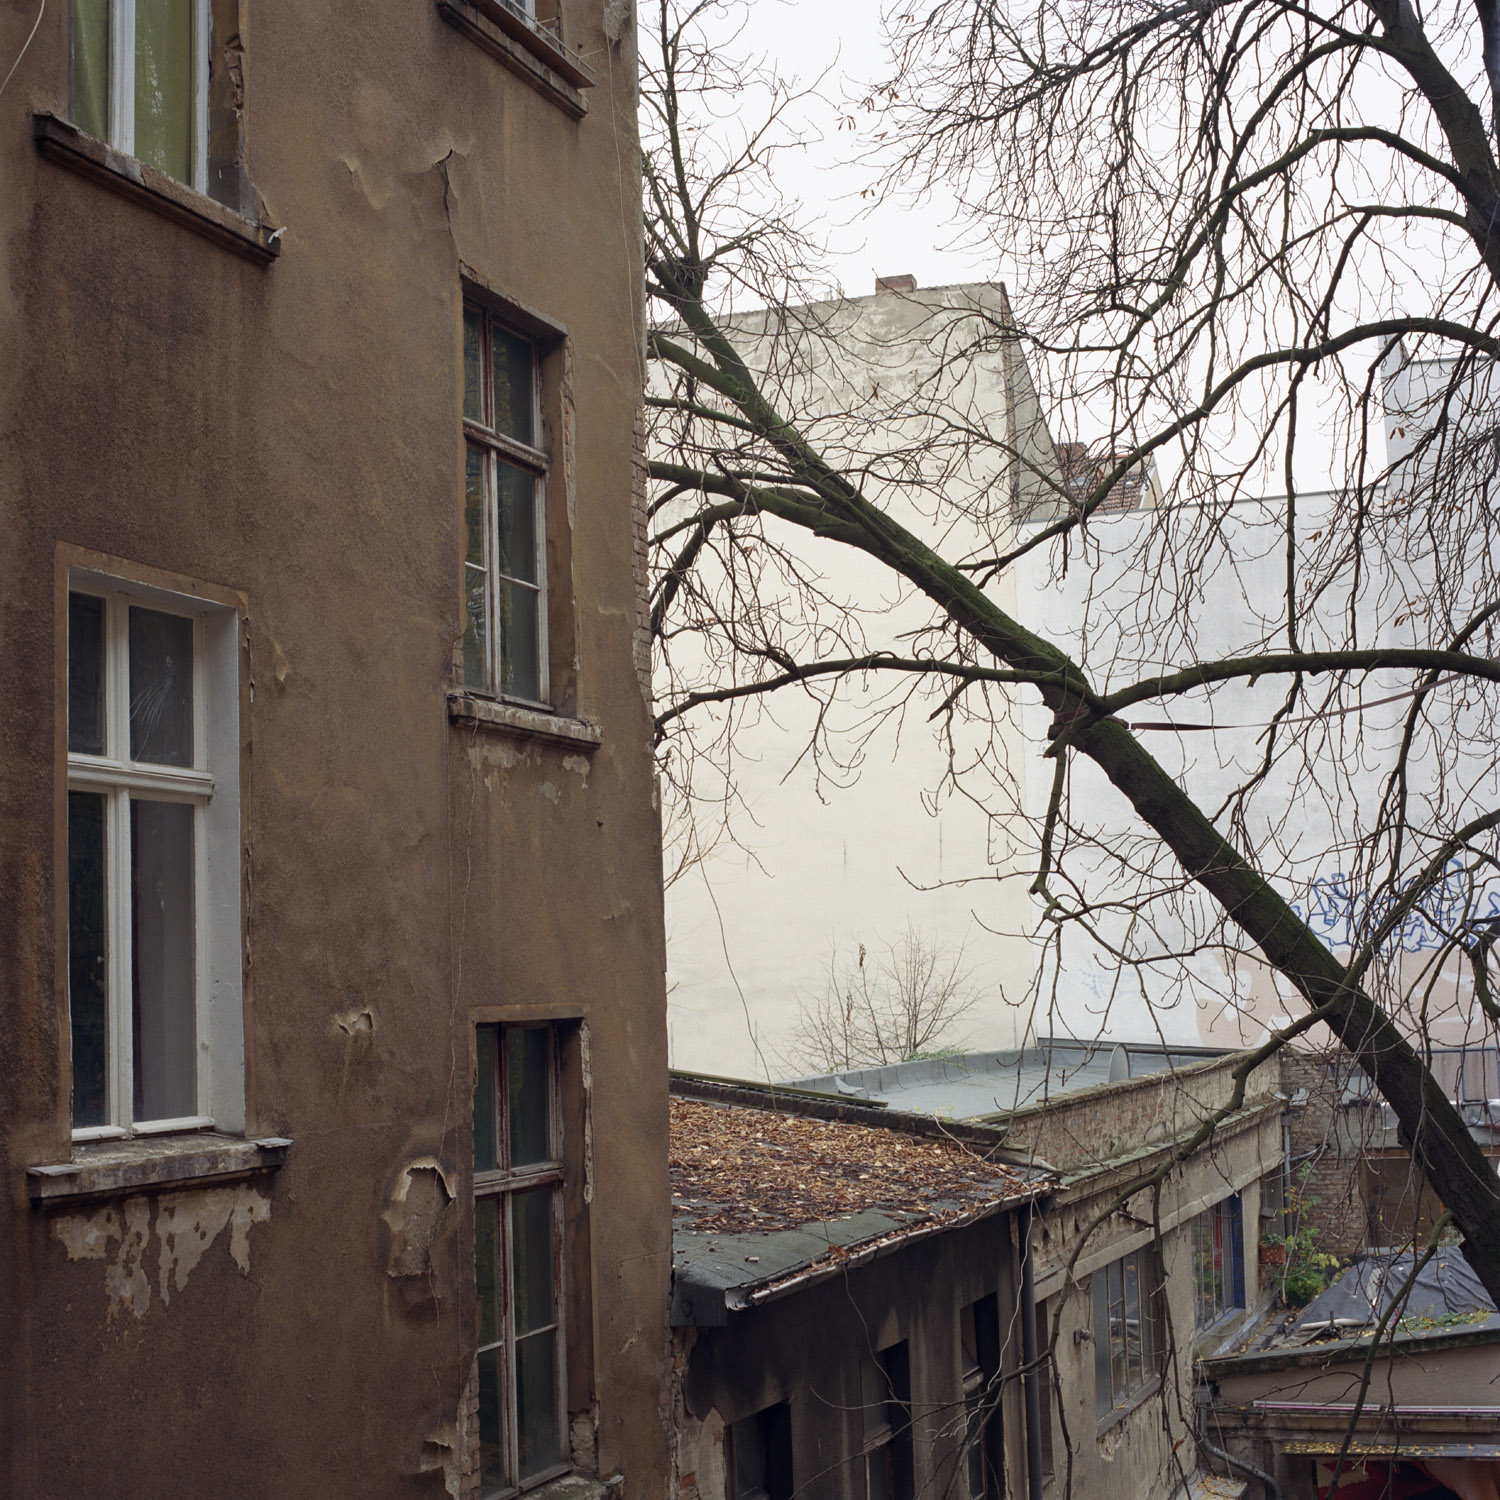 Looking out of the window of the Schokolade Fabrik, 2008, from Berlin Project by Abby Storey